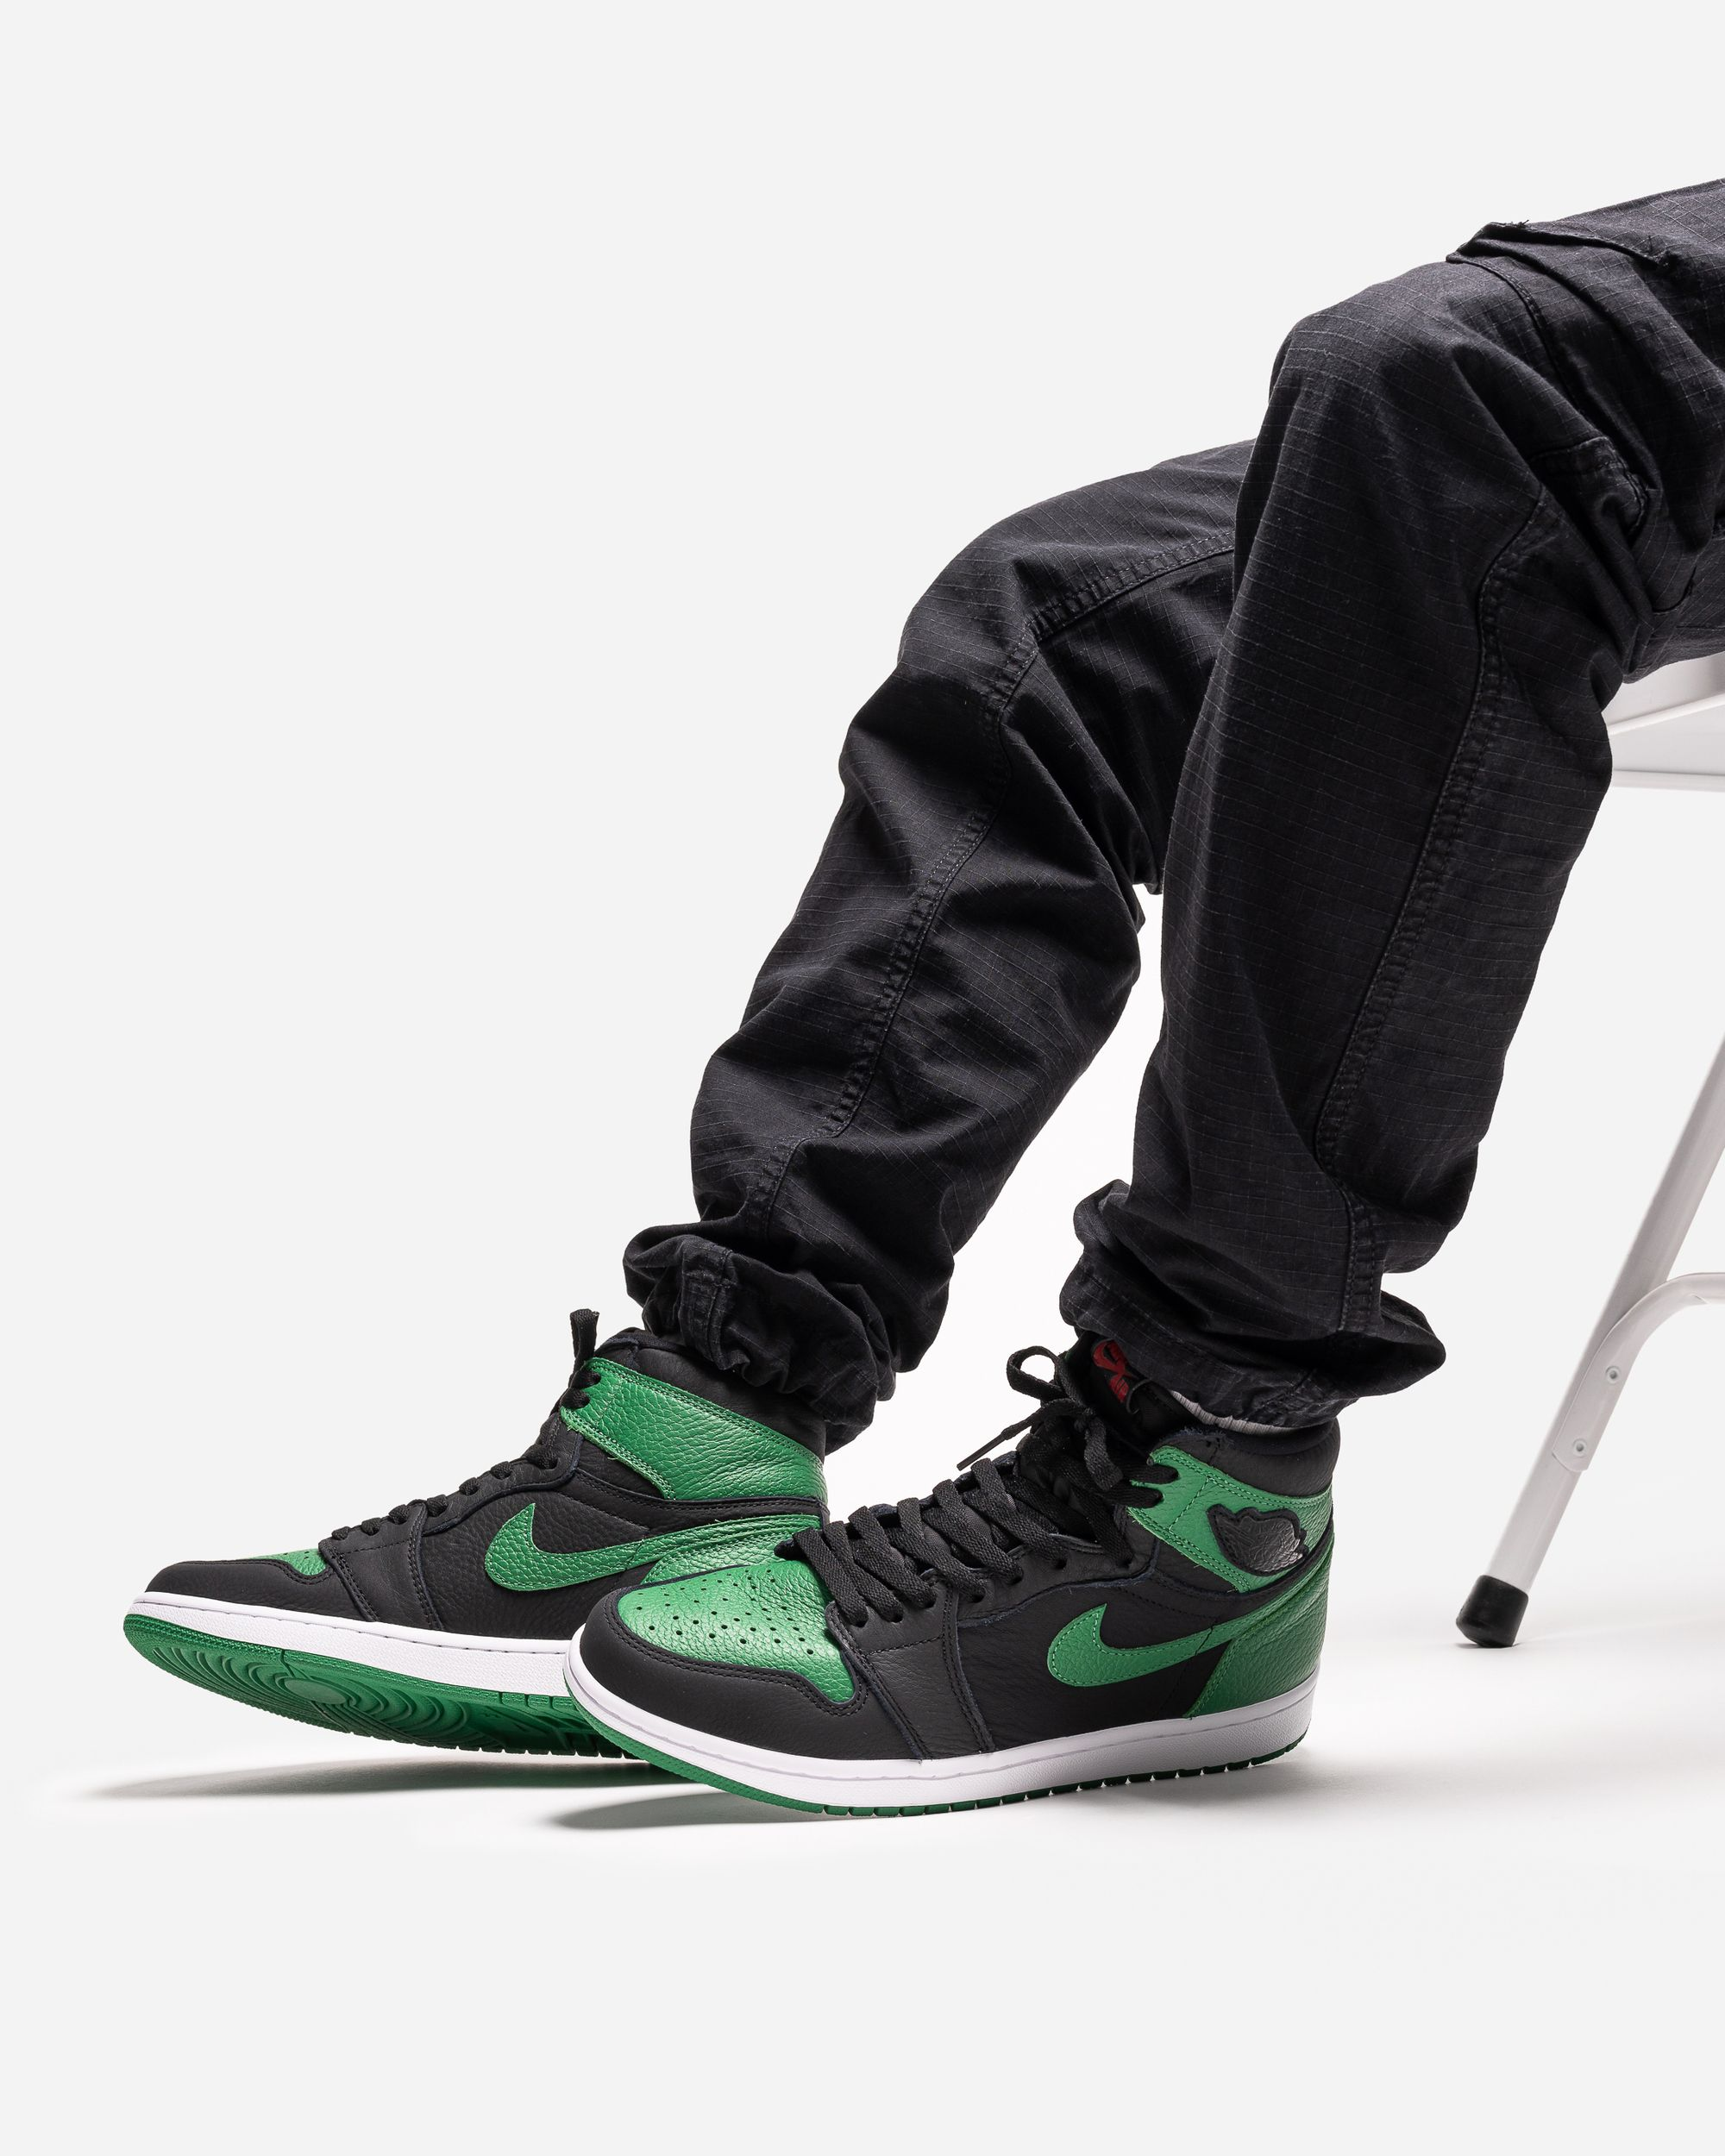 Air Jordan 1 Retro High Og Pine Green In 2020 Air Jordans Jordan 1 Retro High Jordan 1